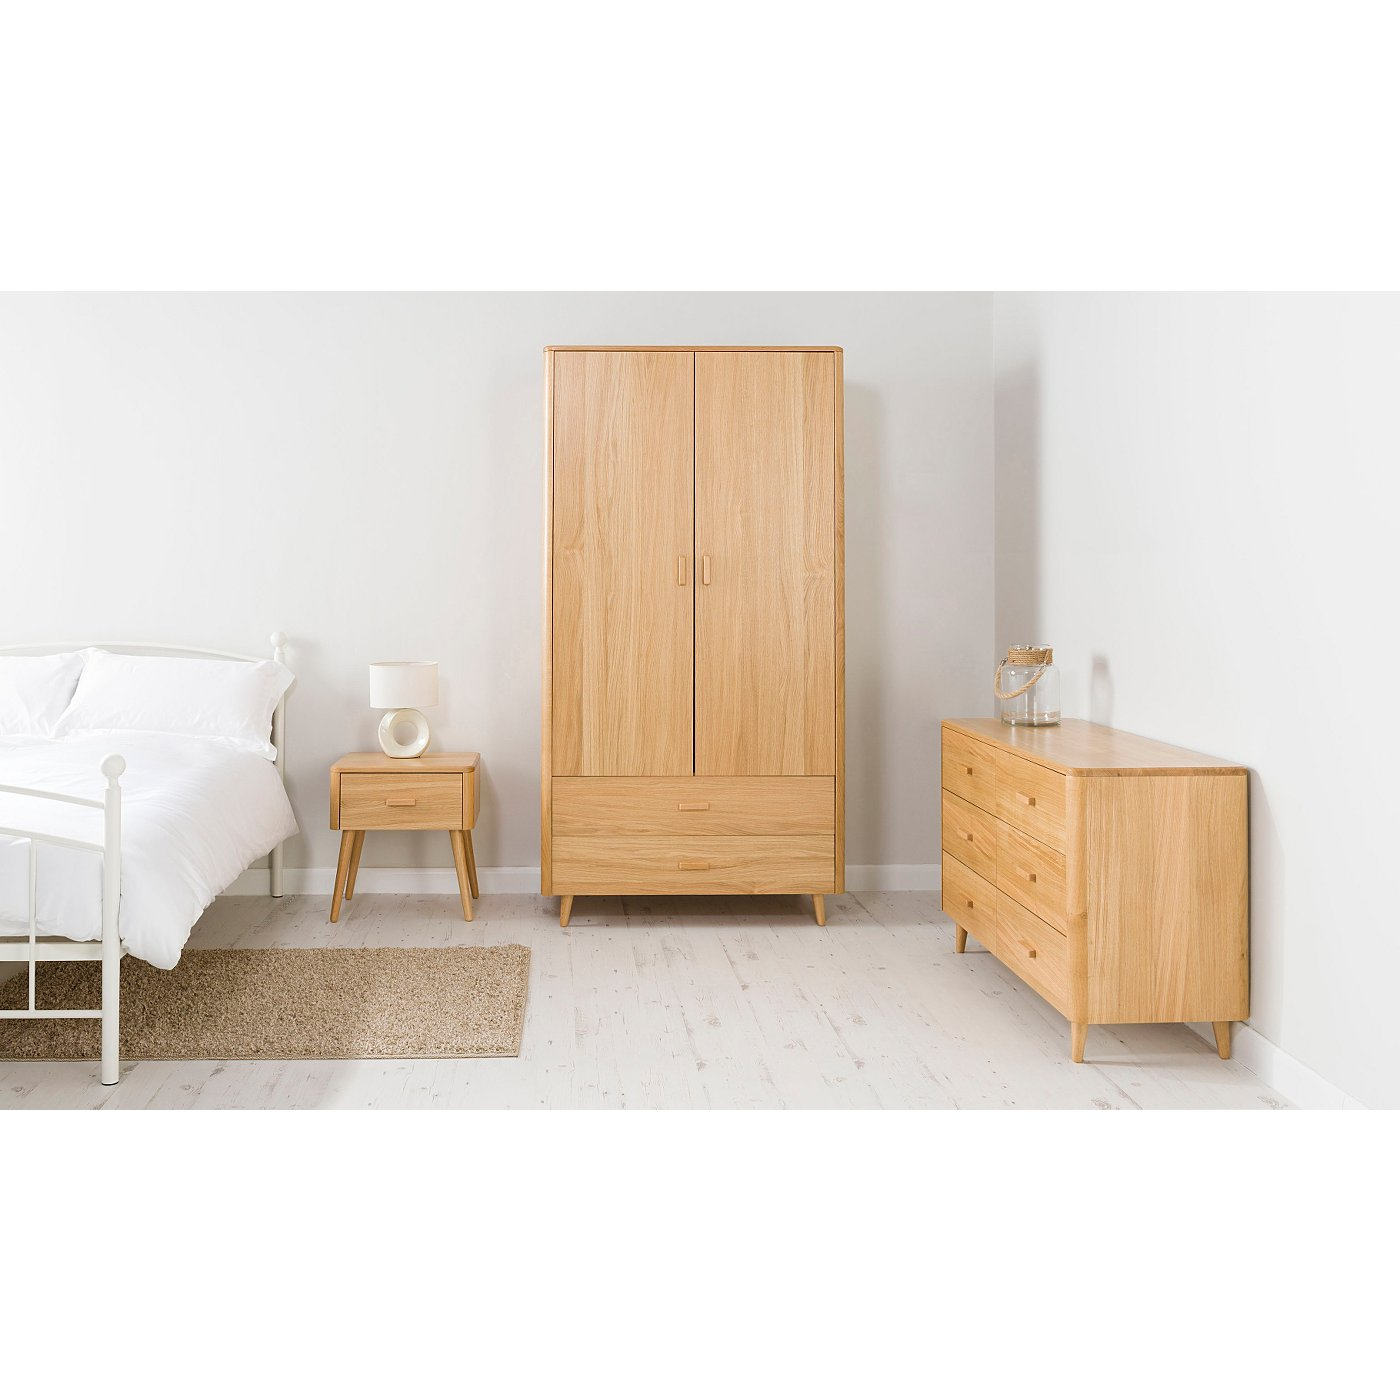 Oak Veneer Bedroom Furniture George Home Idris Bedroom Furniture Range Oak And Oak Veneer